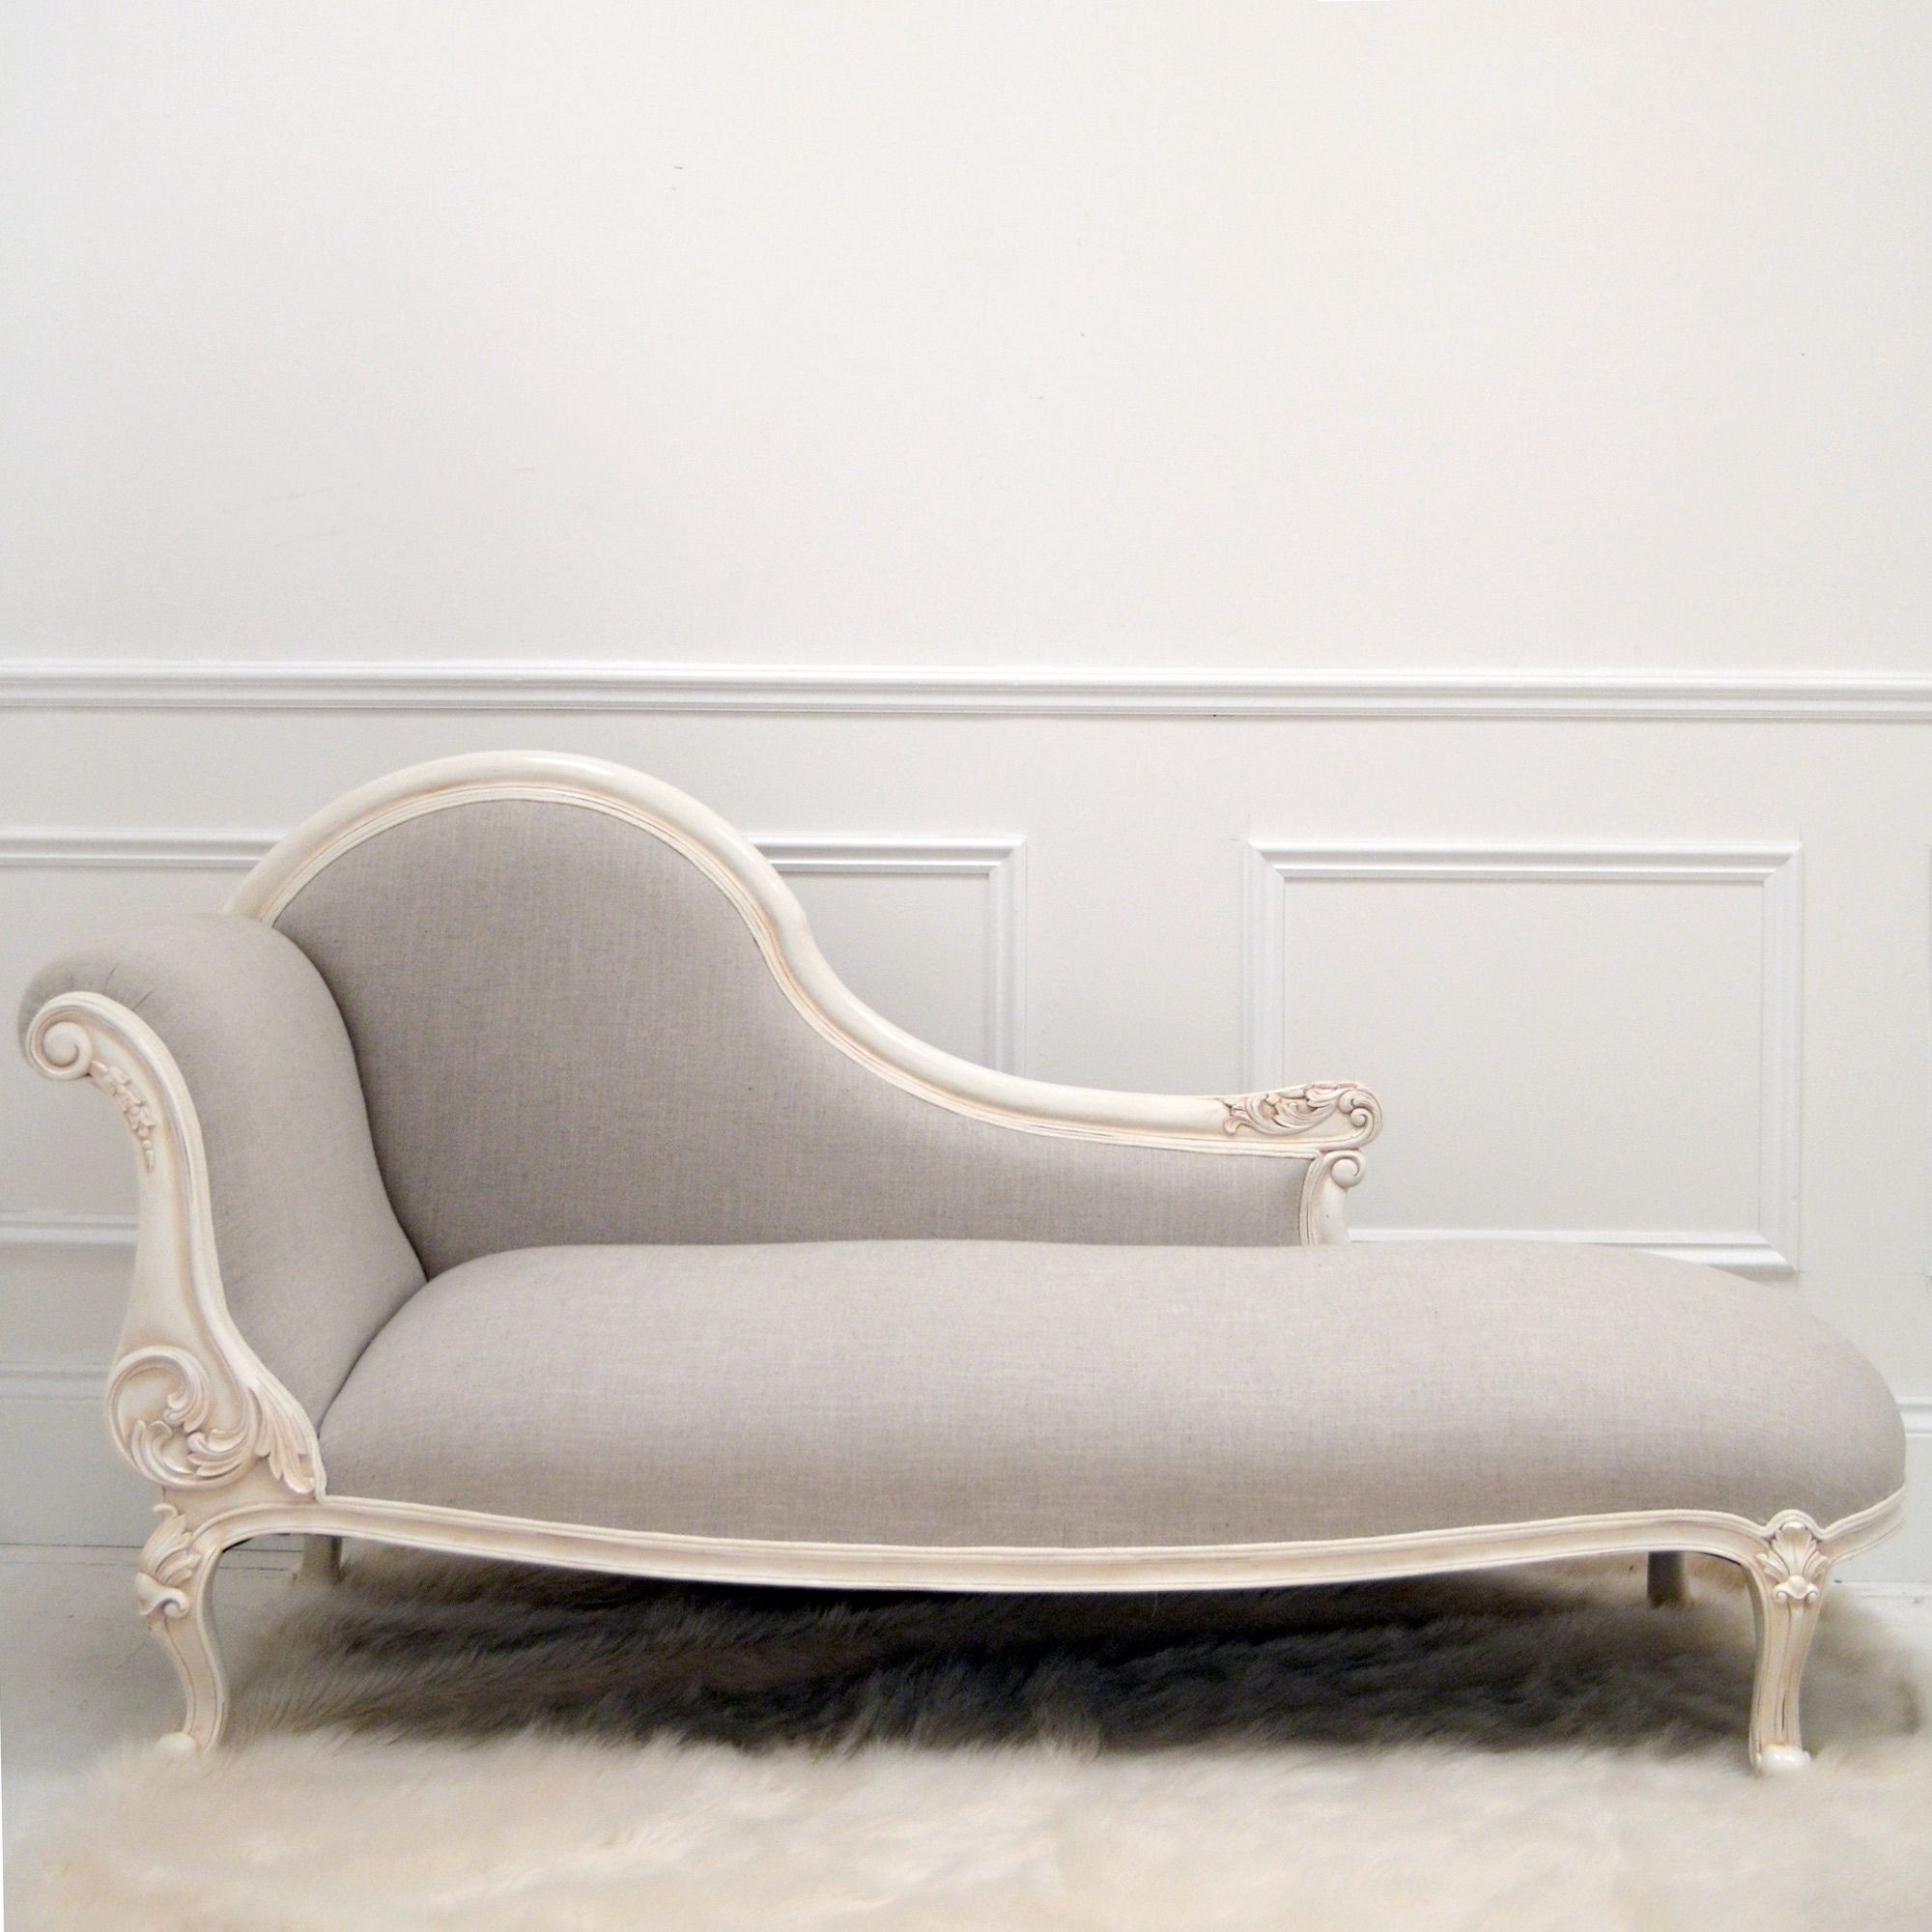 Http Www Sweetpeaandwillow Com Alana Pebble Chaise Longue Modern Chaise Lounge Furniture White Lounge Chair